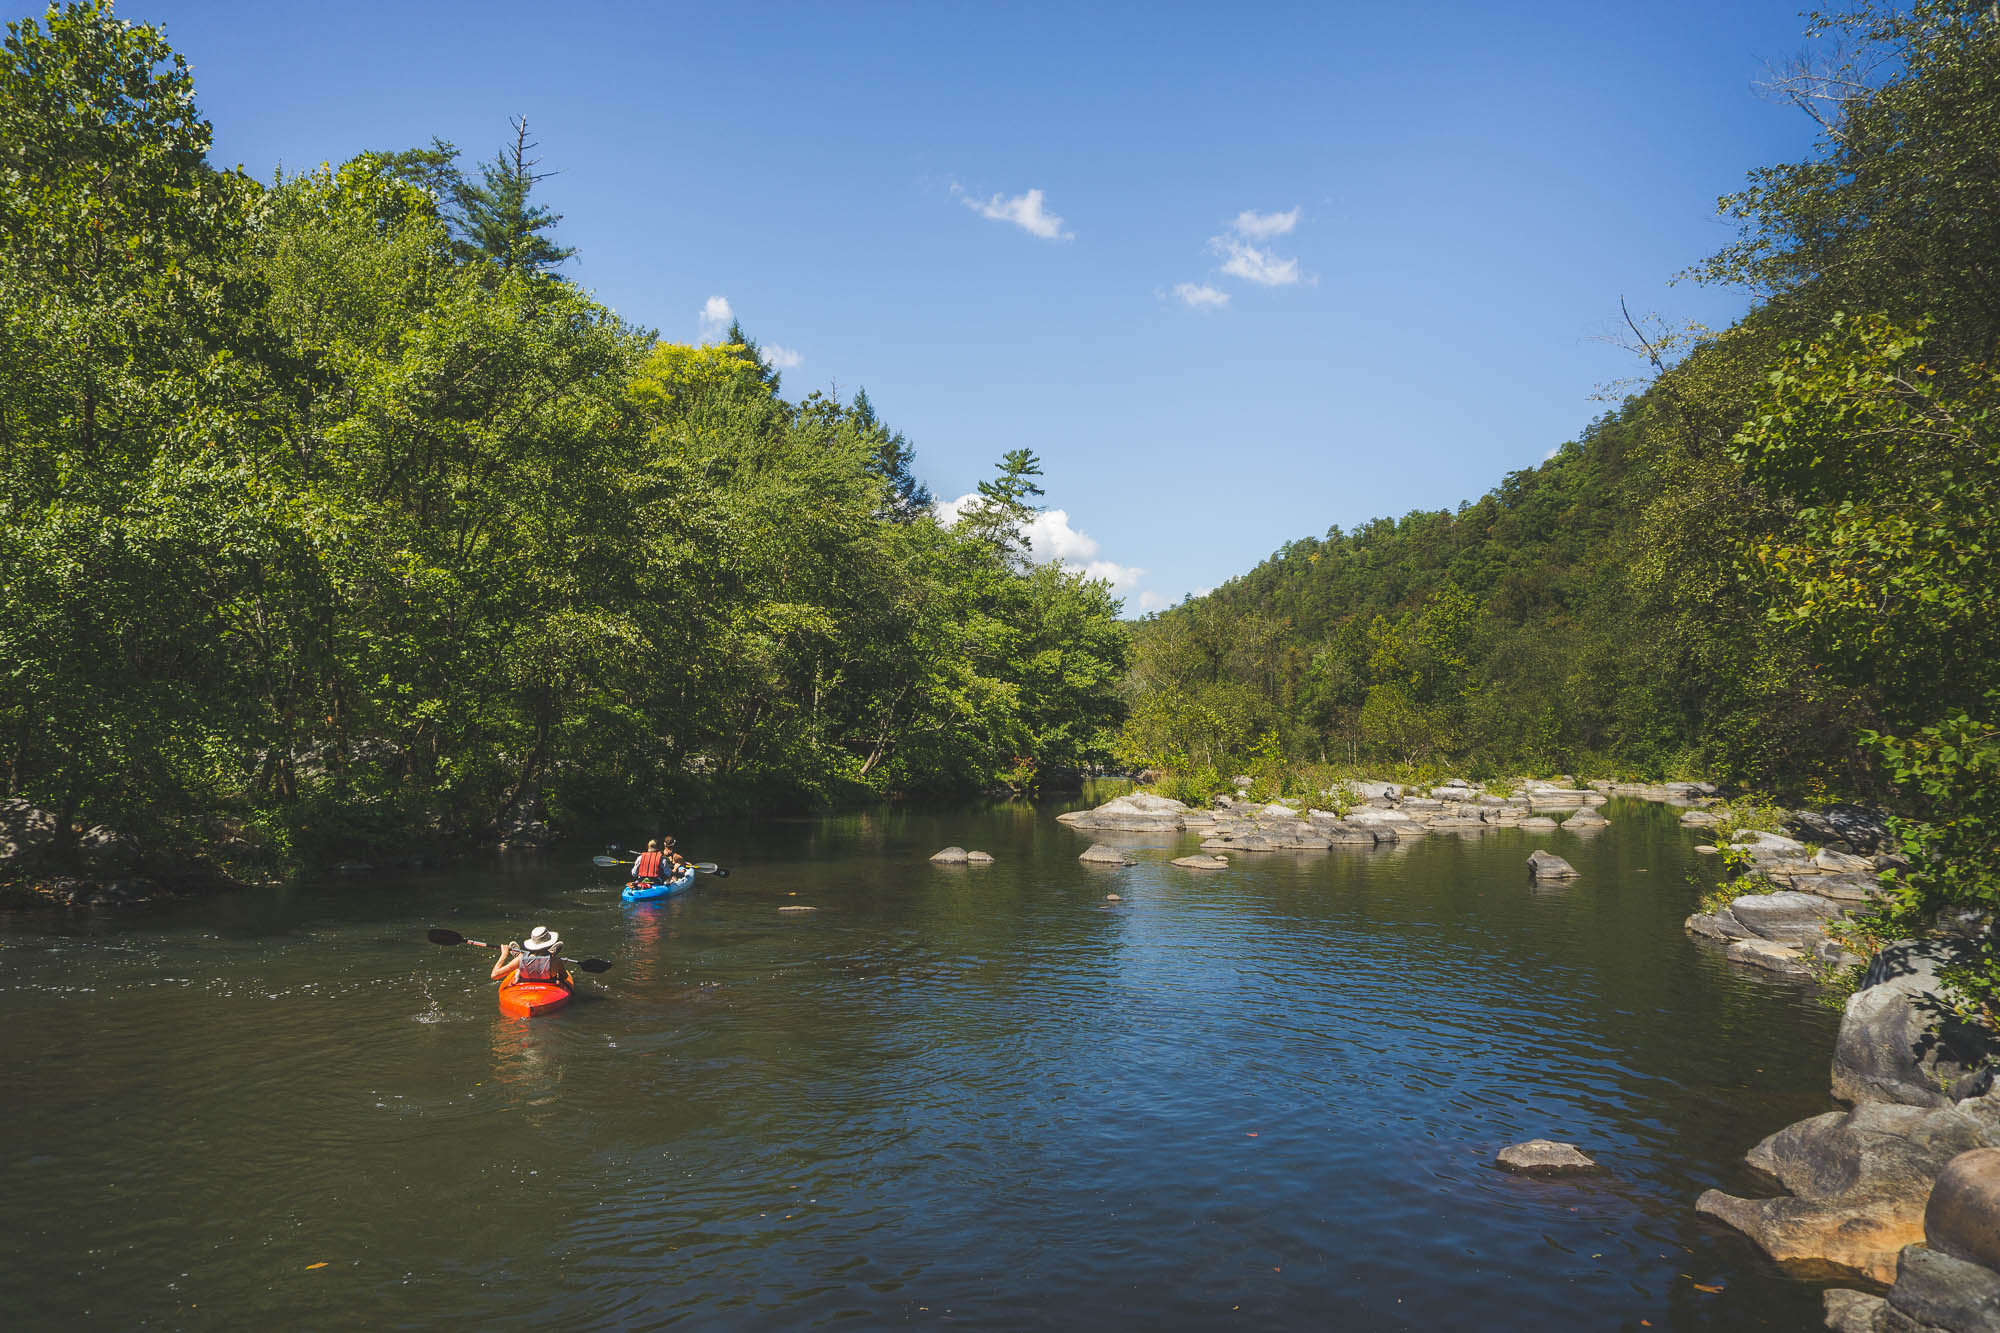 Appalachia_River_Adventure_2016_Compressed_for_Social-20.jpg